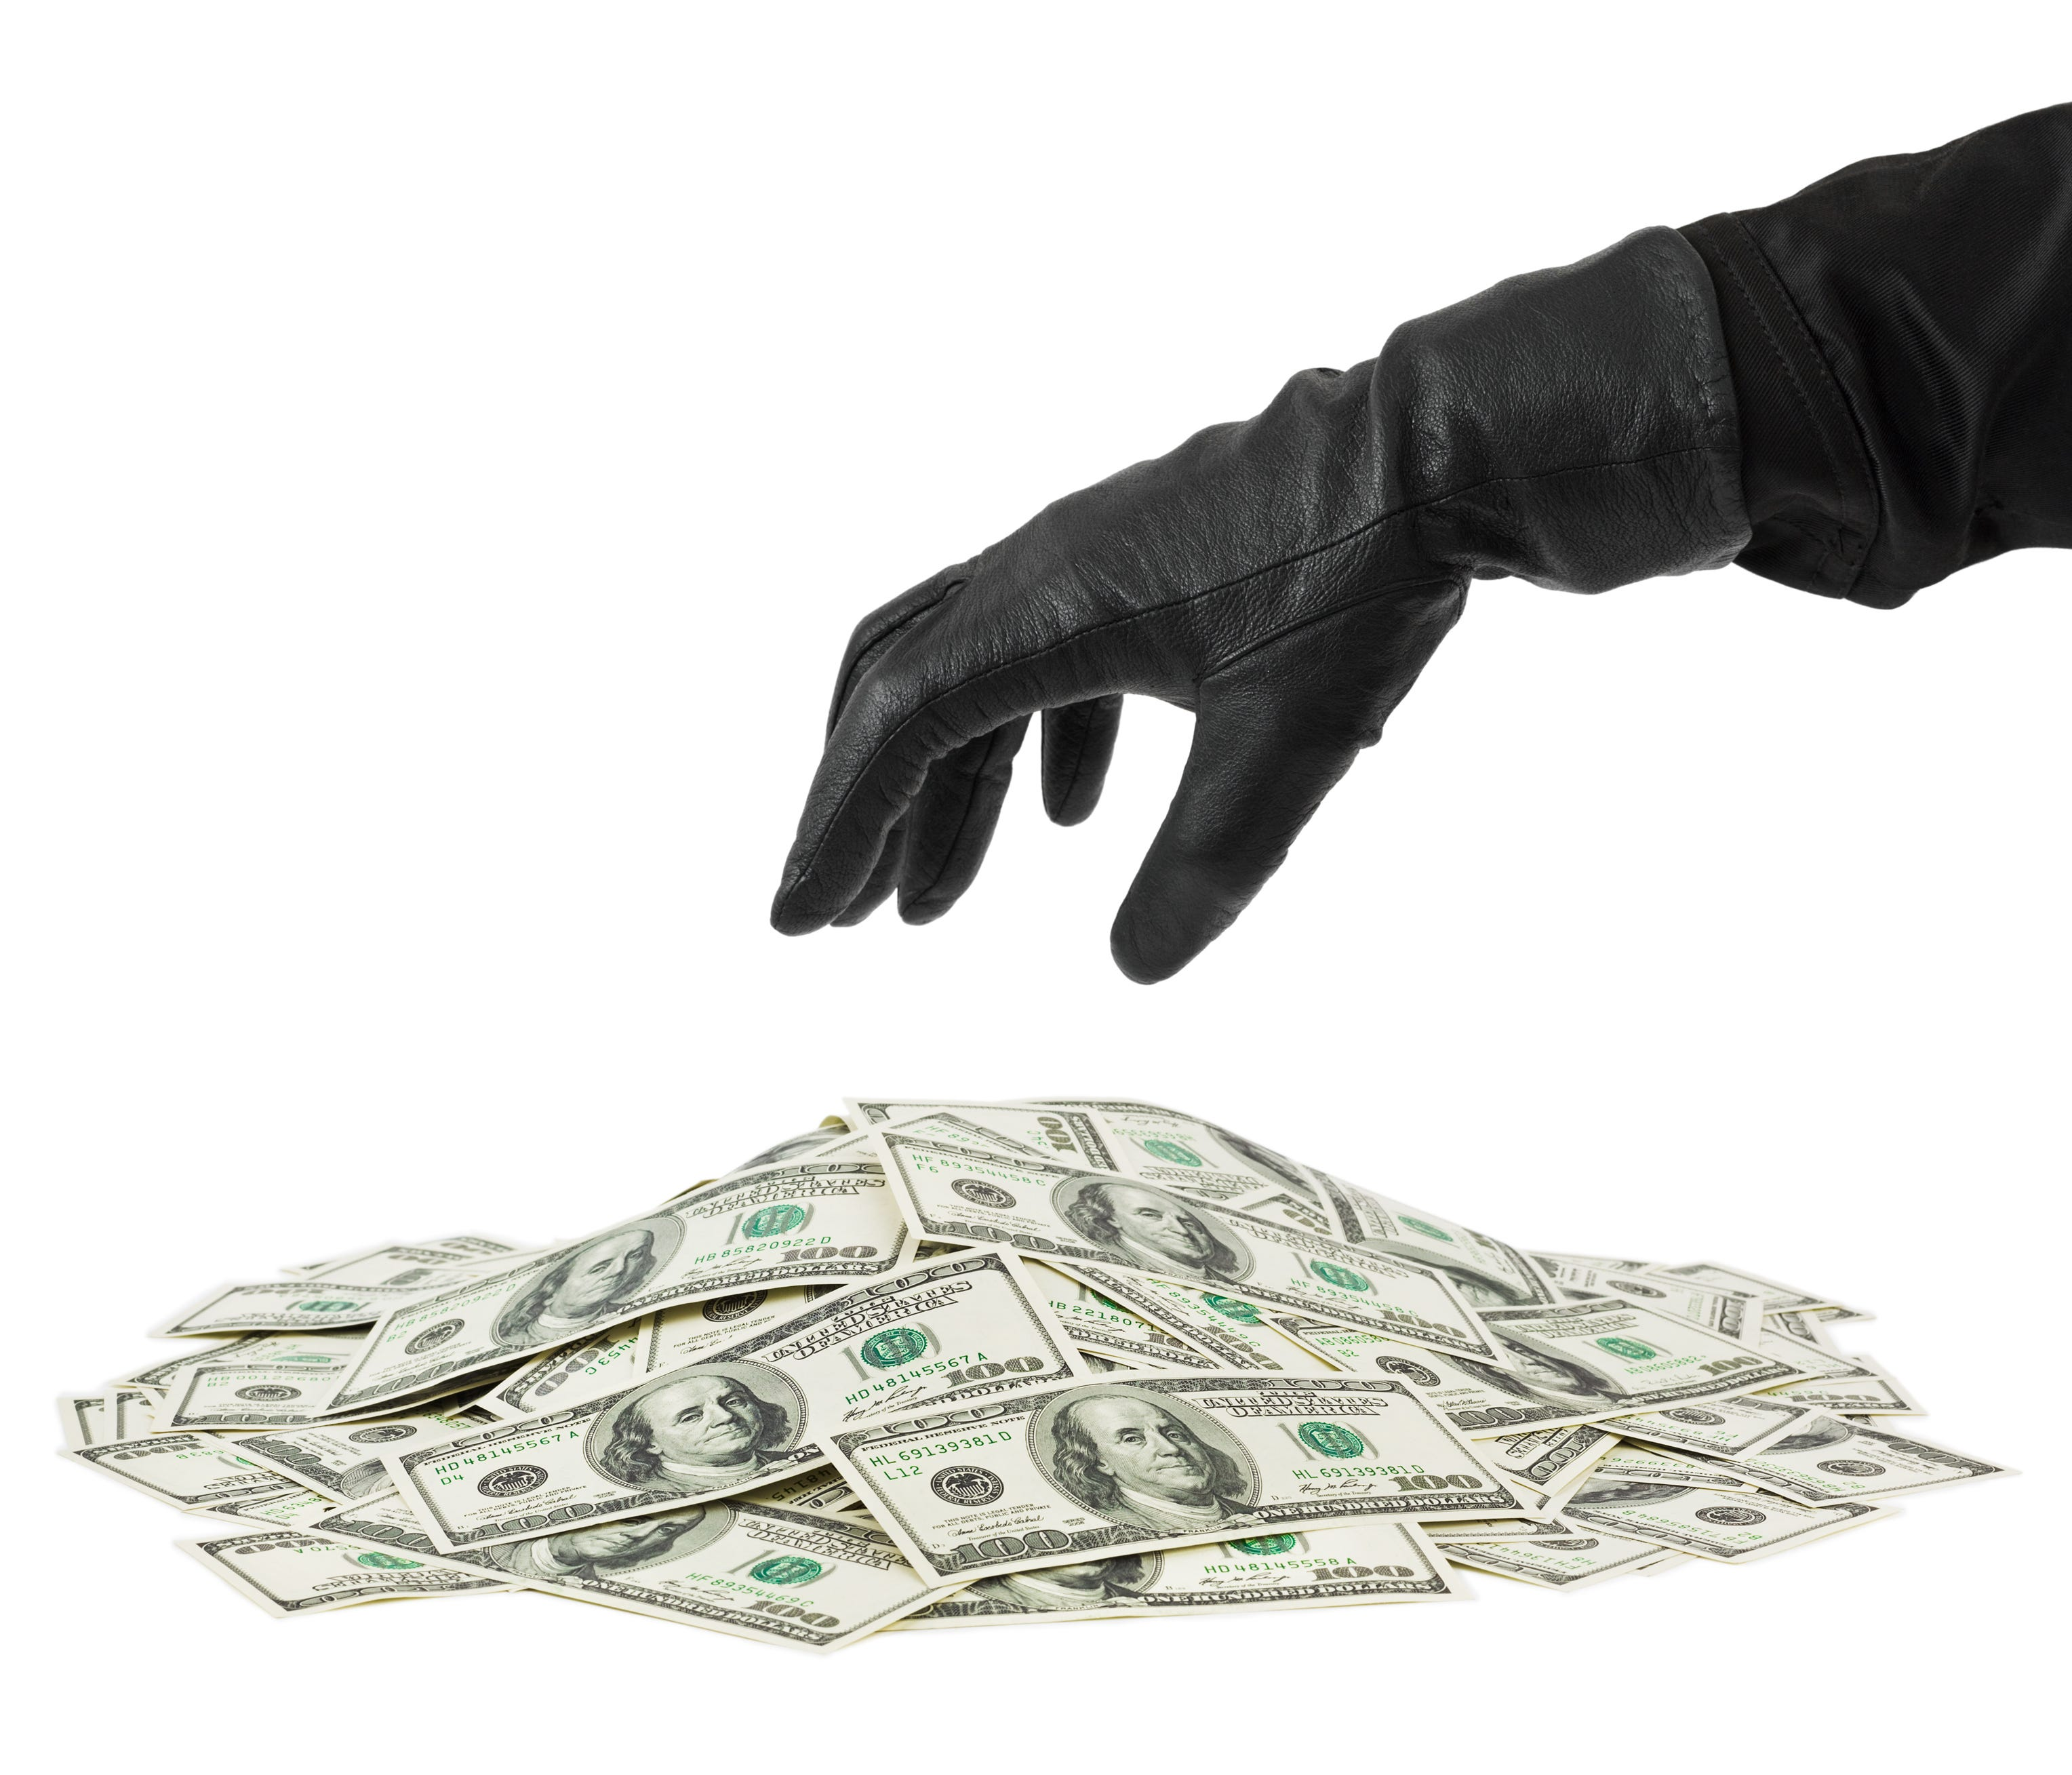 7 things to do if your tax refund is stolen